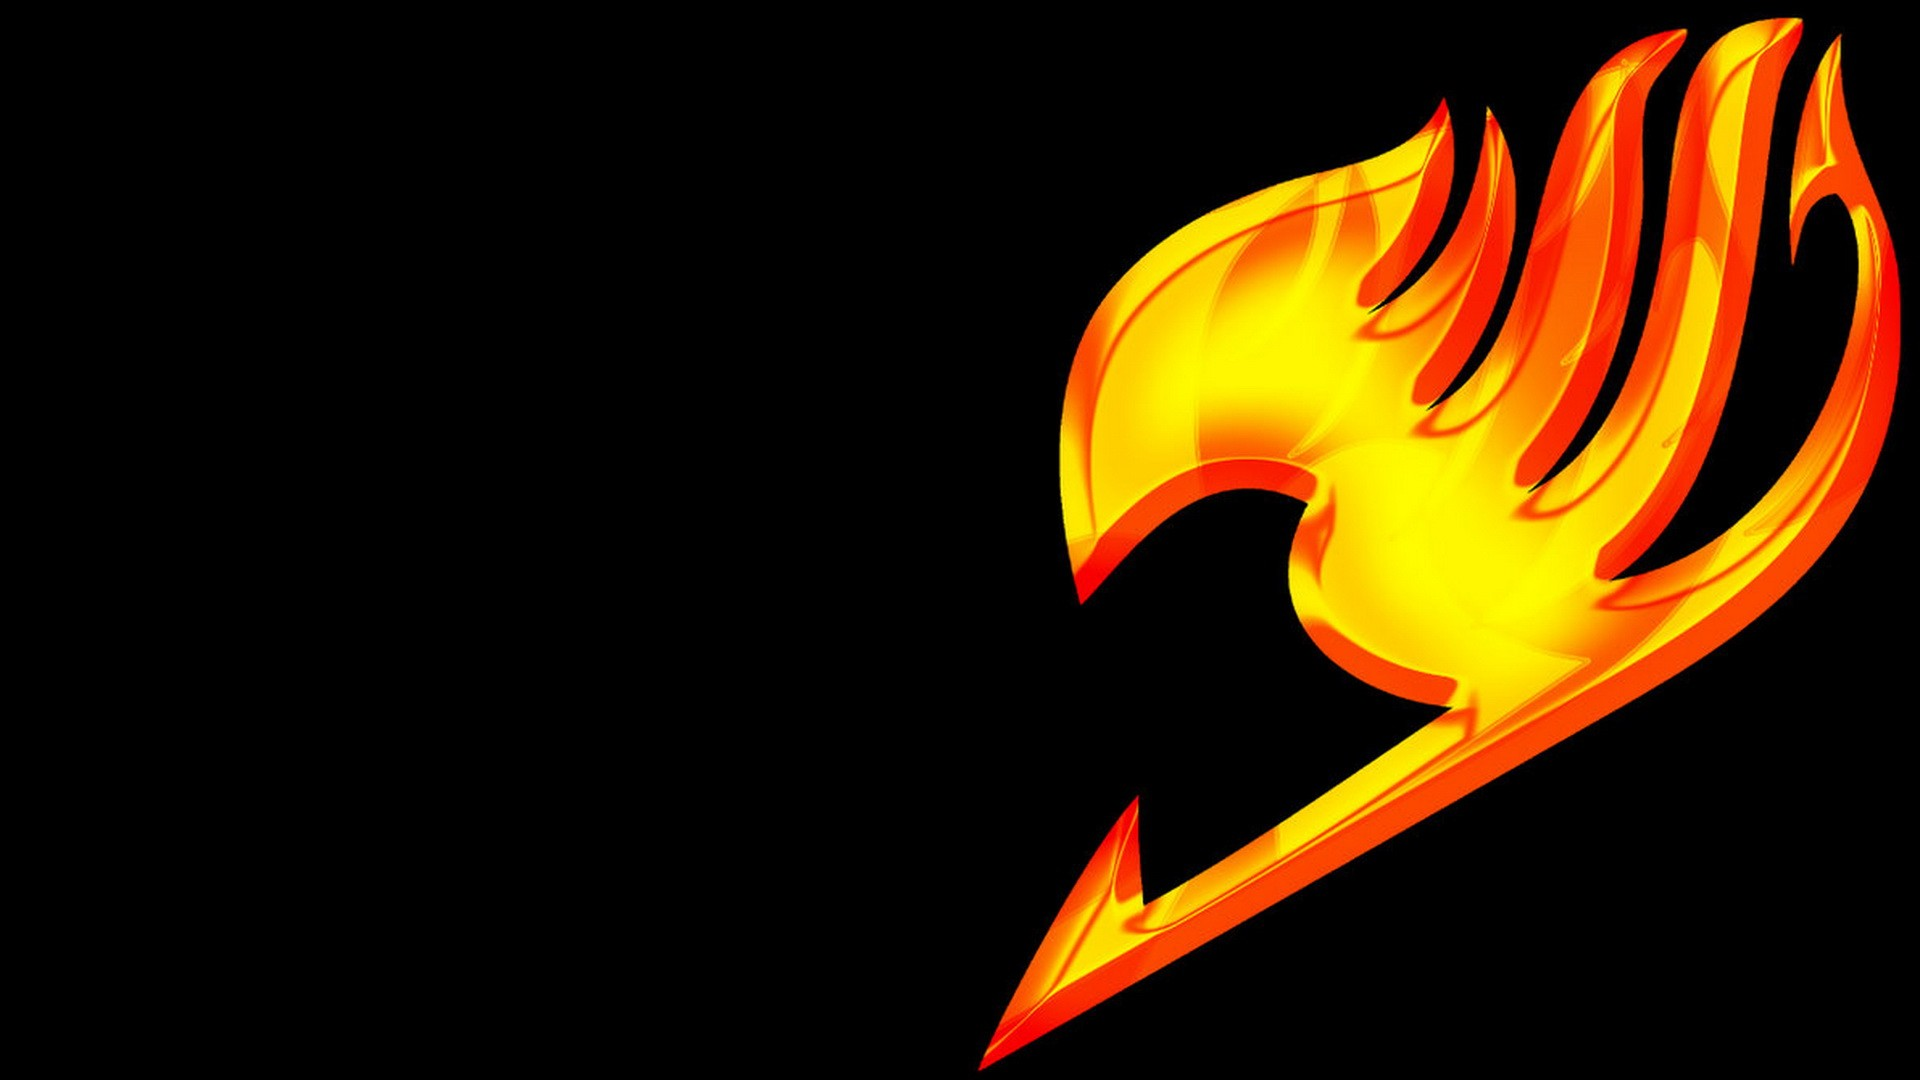 Fairy Tail Logo Wallpaper Download Free Cool Full Hd Backgrounds